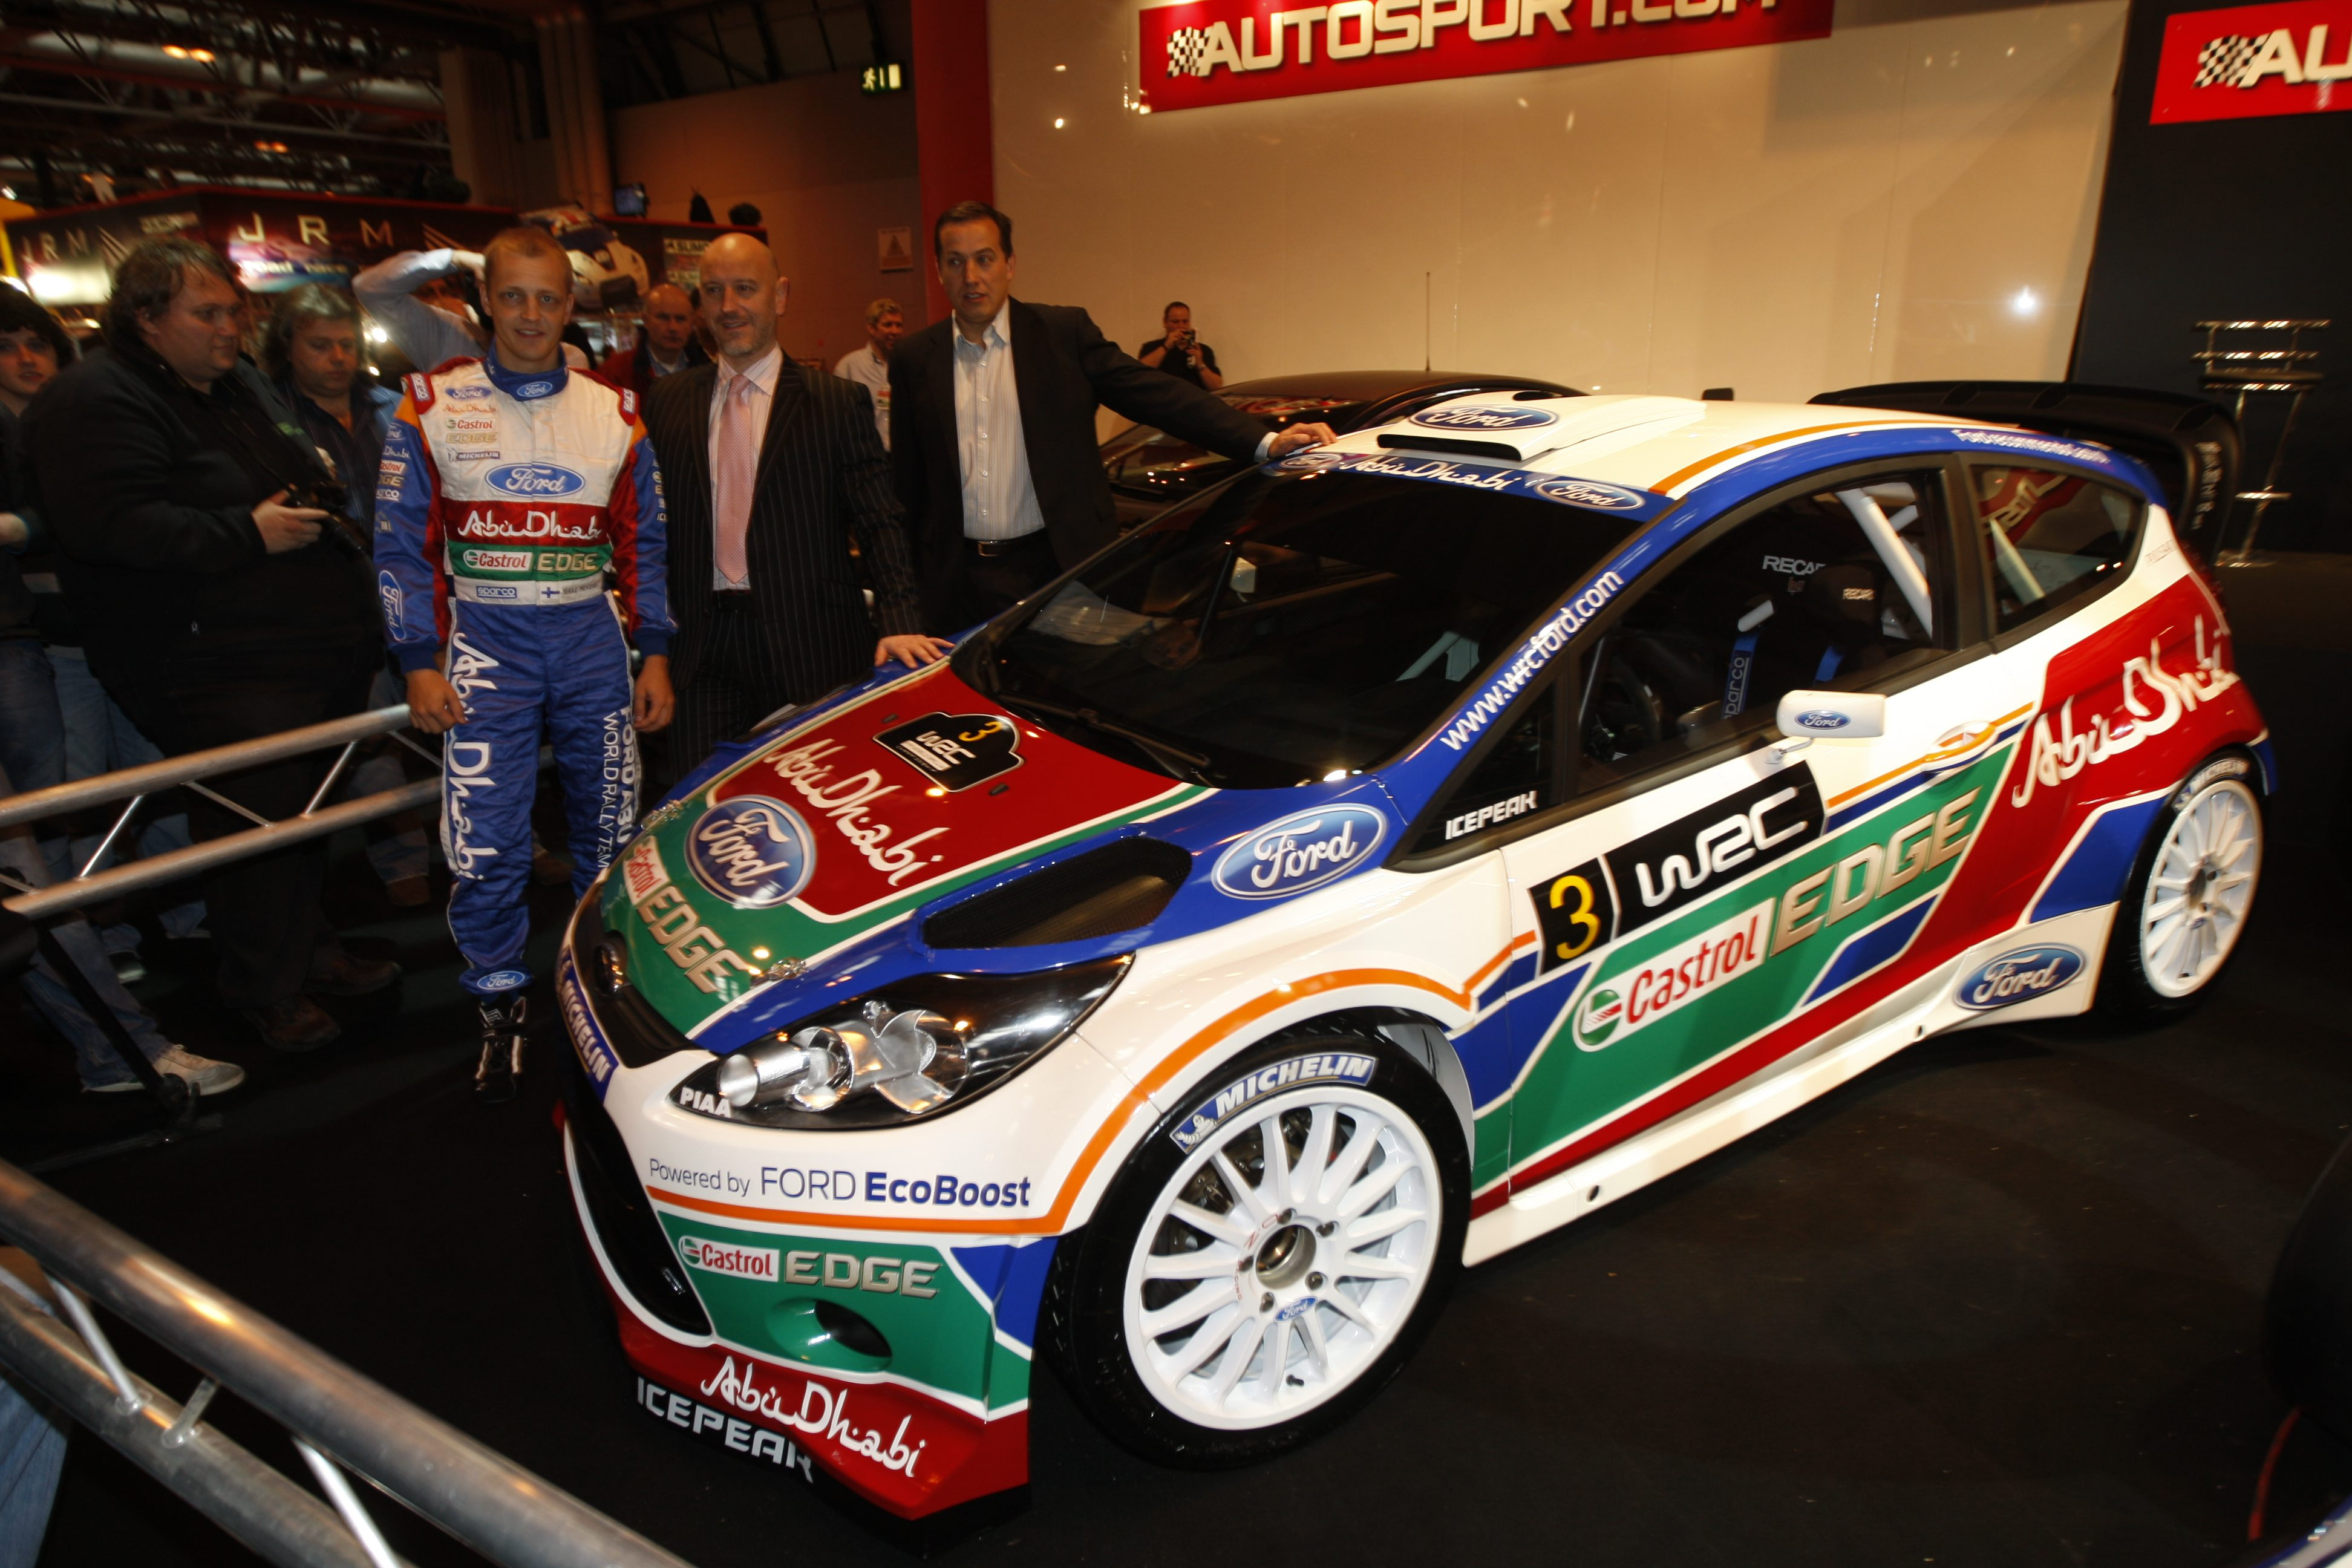 ford unveils new 2011 fiesta rs wrc livery. Black Bedroom Furniture Sets. Home Design Ideas